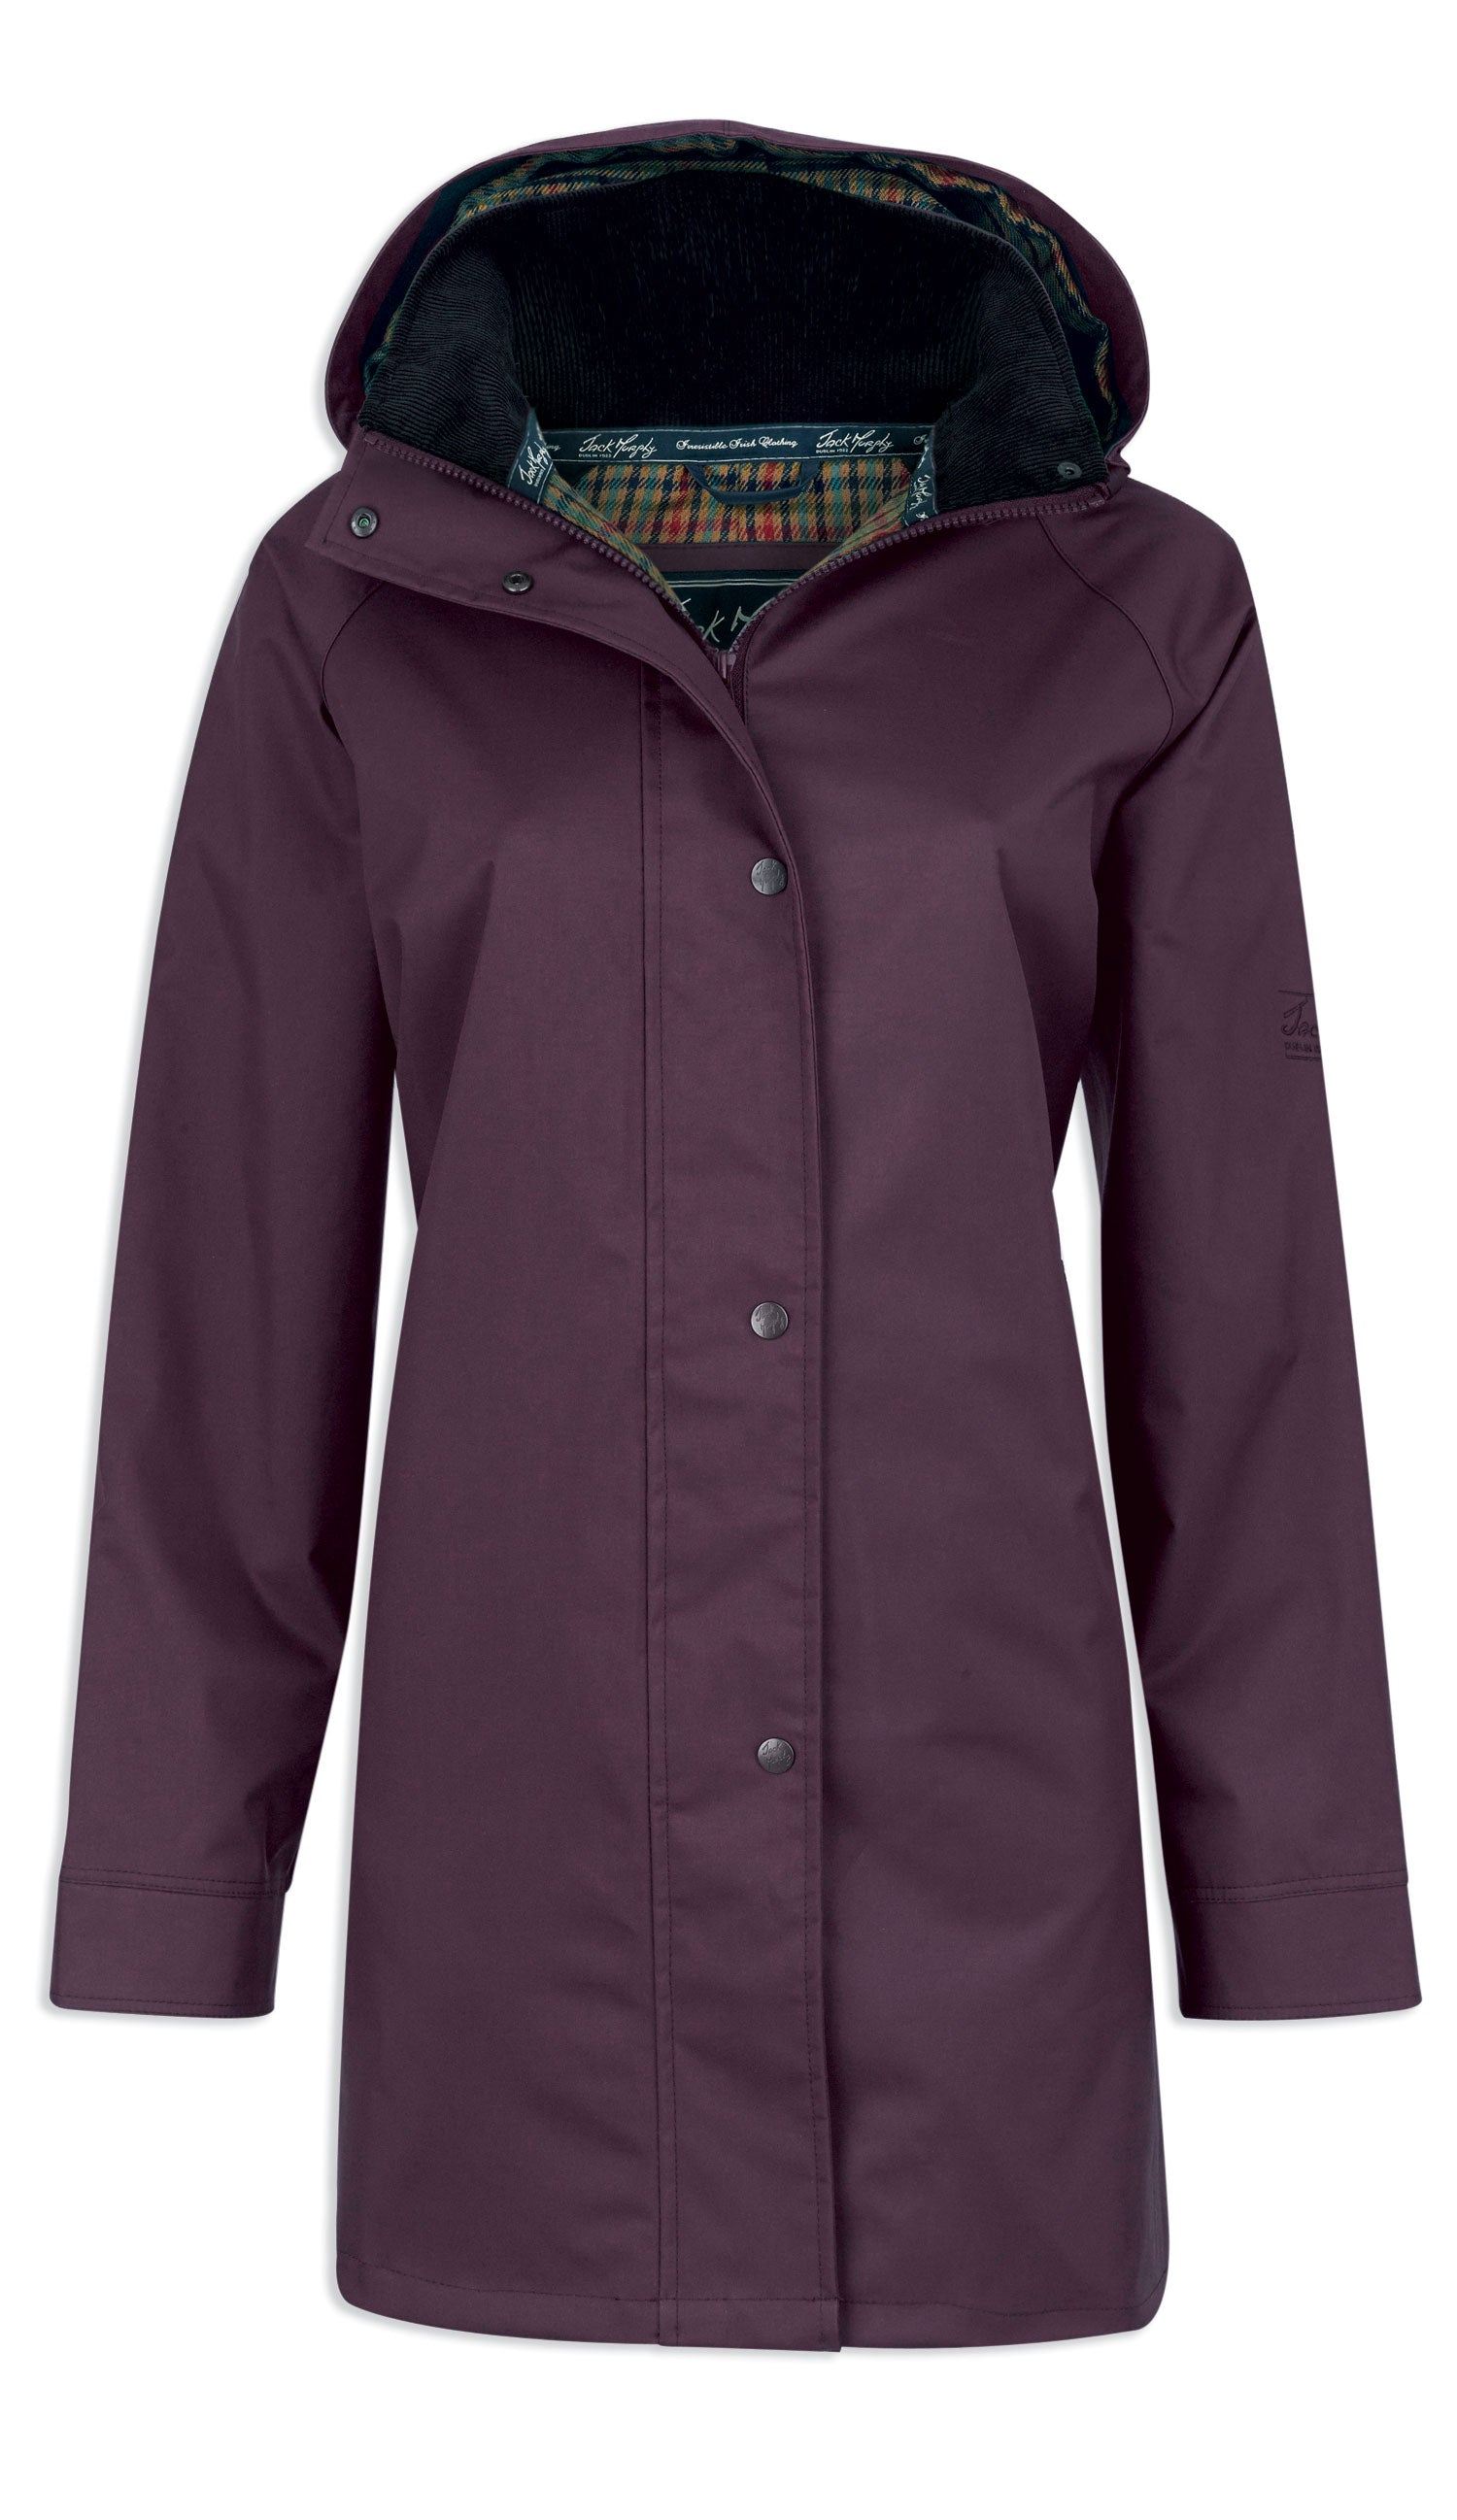 Jack Murphy Ladies Oxford Waterproof Coat in Blackberry